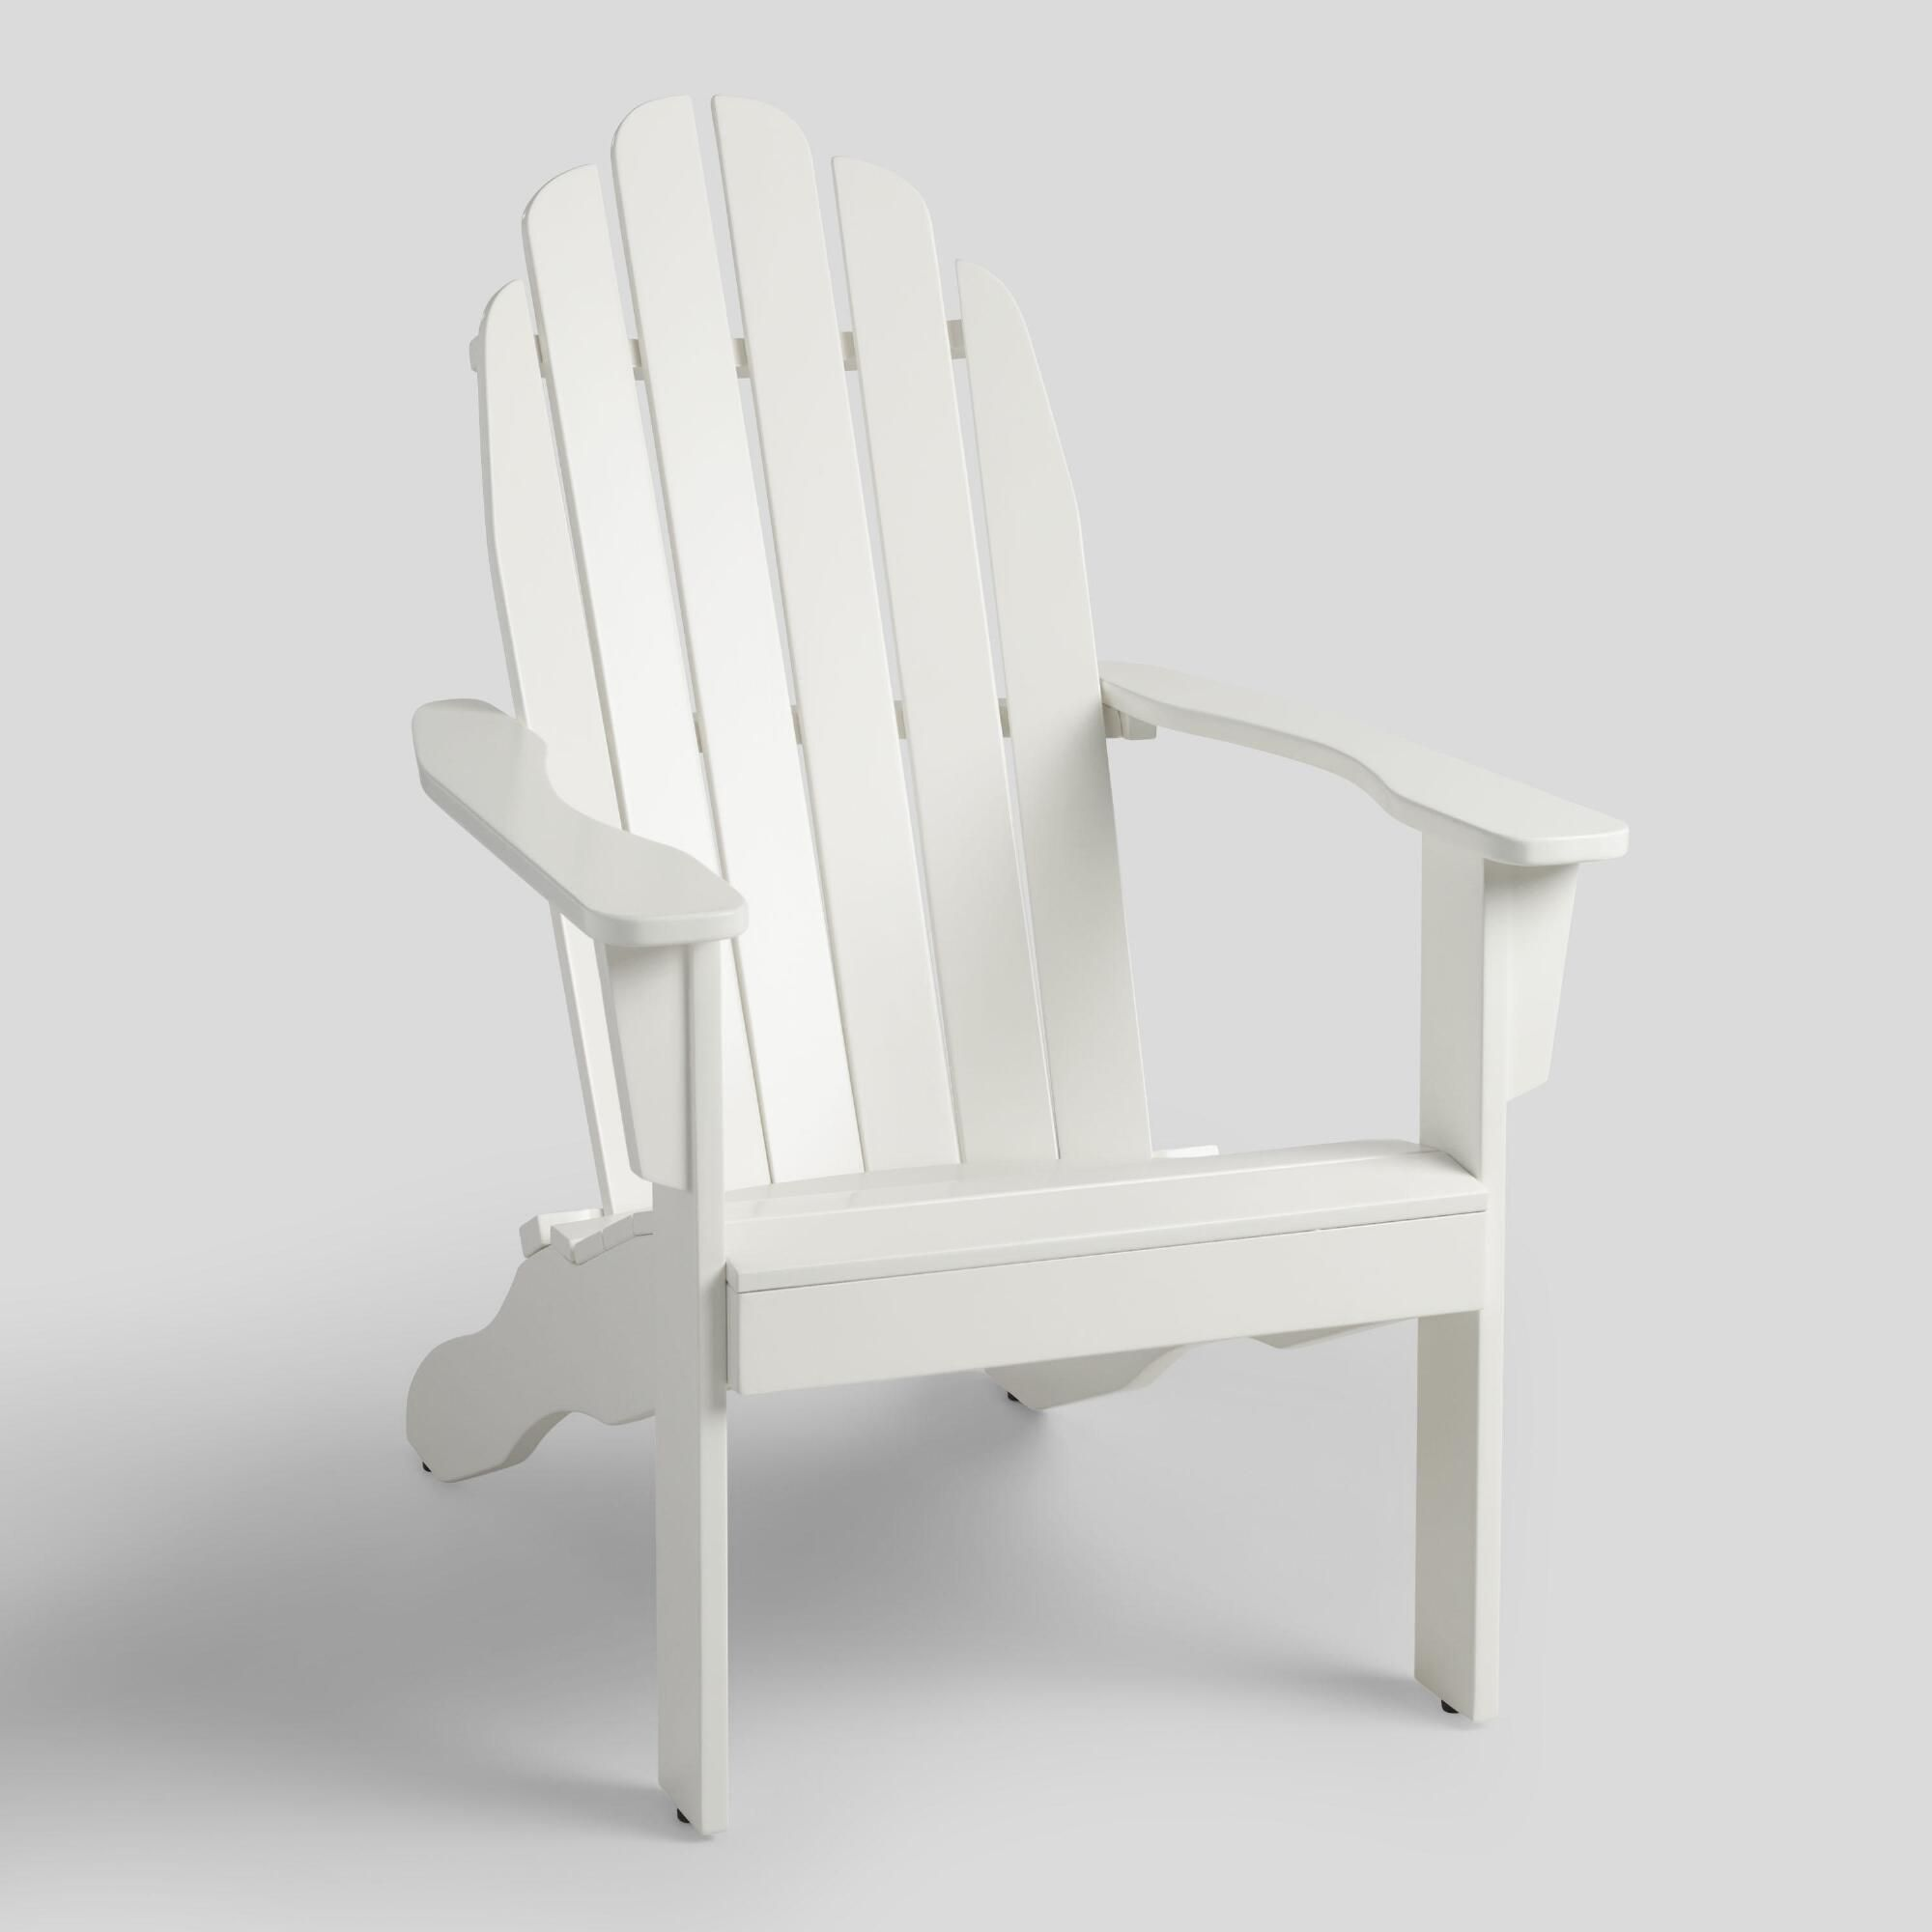 Antique White Adirondack Chair Wood By World Market White